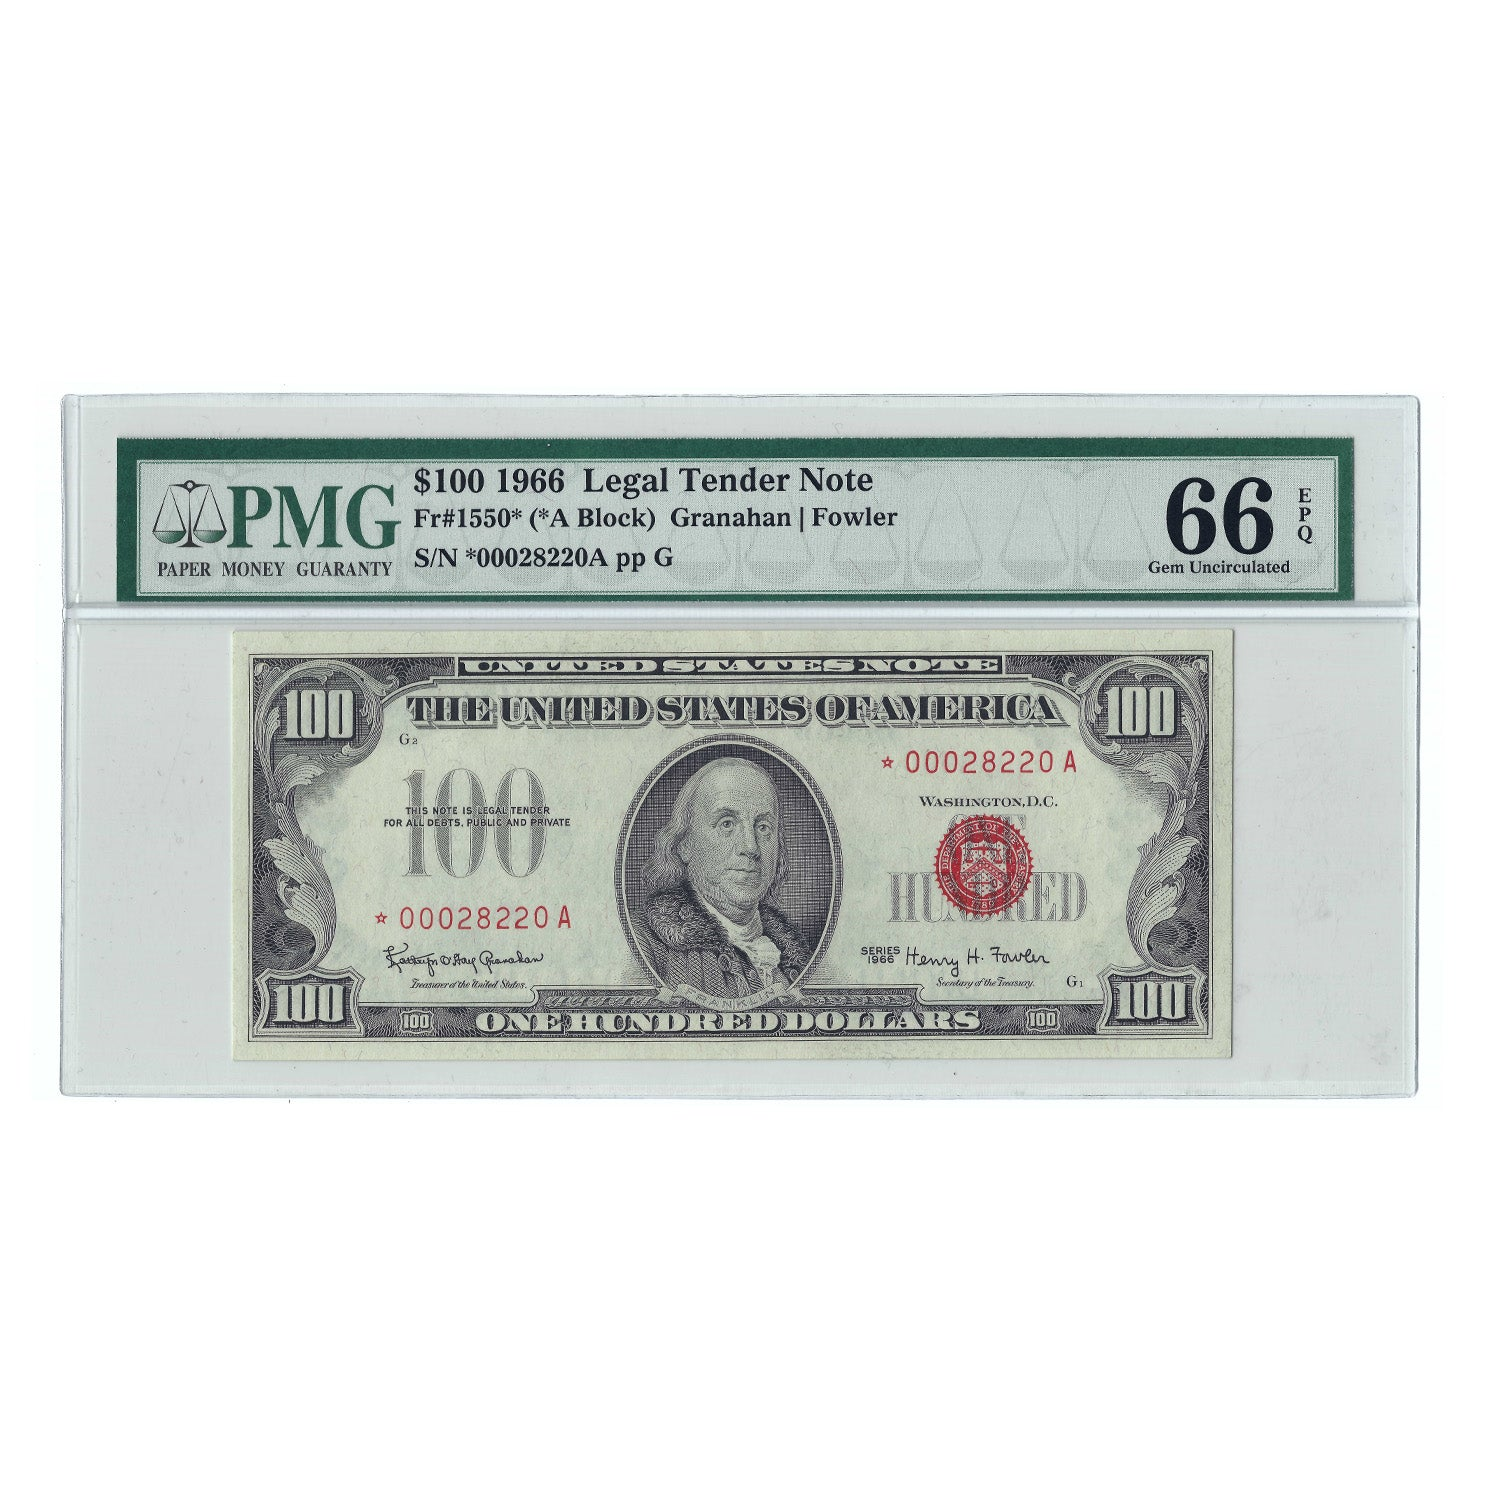 1966* $100 Legal Tender Note, Granahan-Fowler, FR1550*, PMG 66EPQ, Star Note